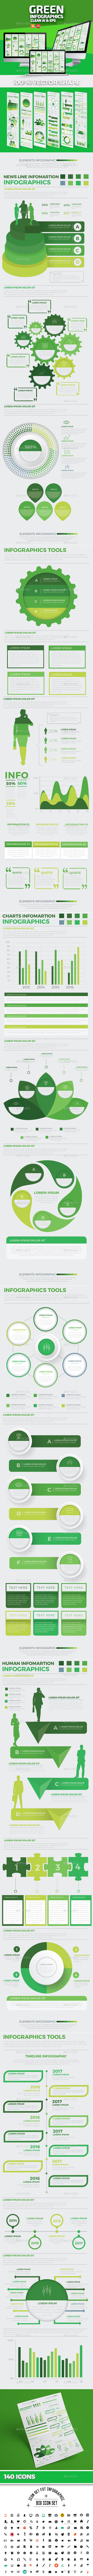 Green Infographic Set Design - Infographics